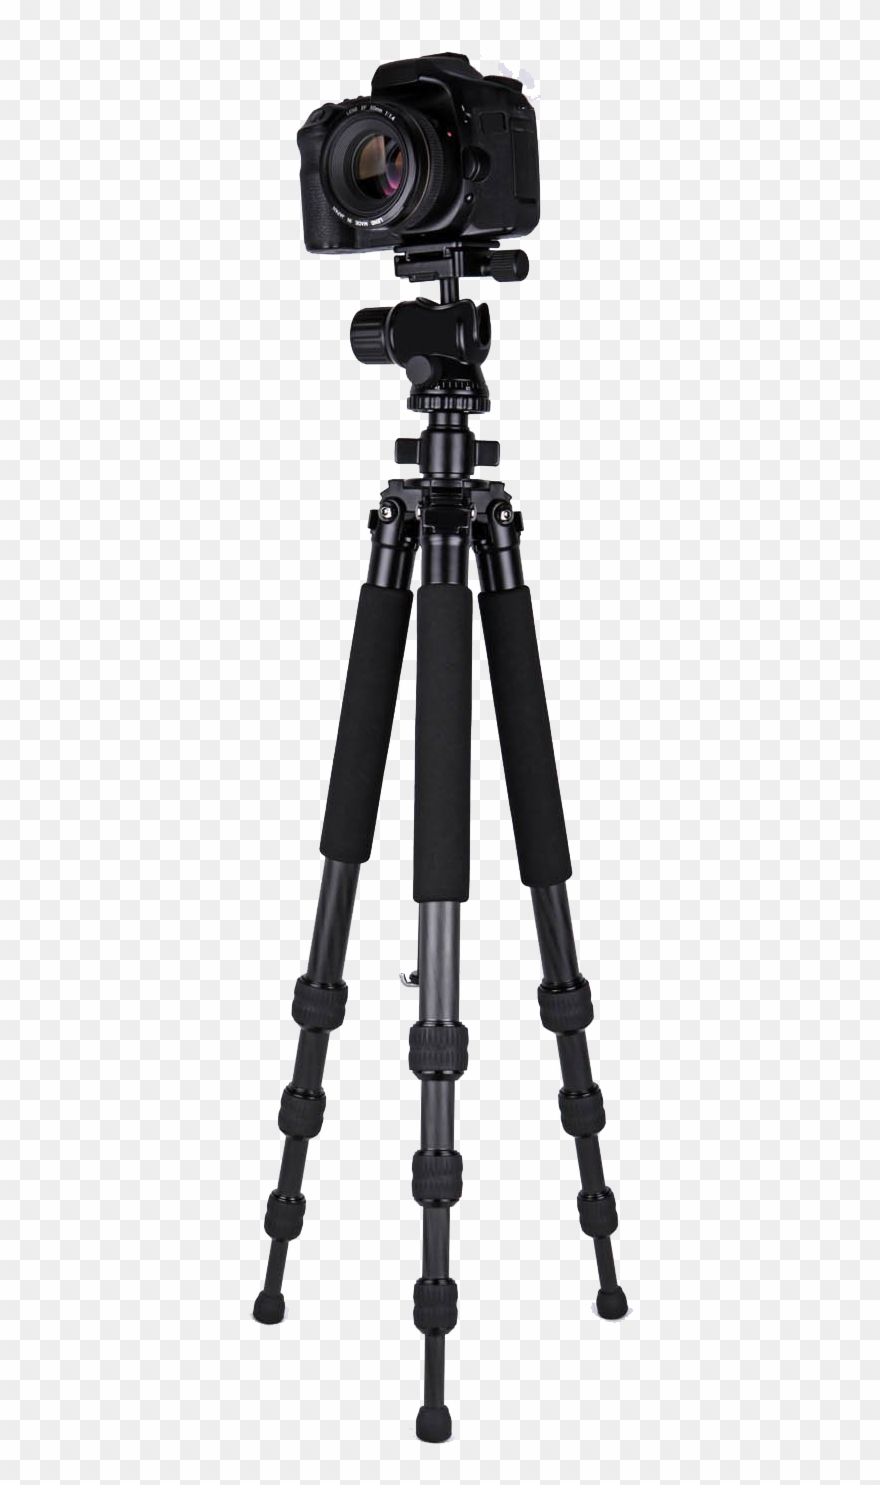 Video Camera Tripod Png Image - Camera On Tripod Png ...